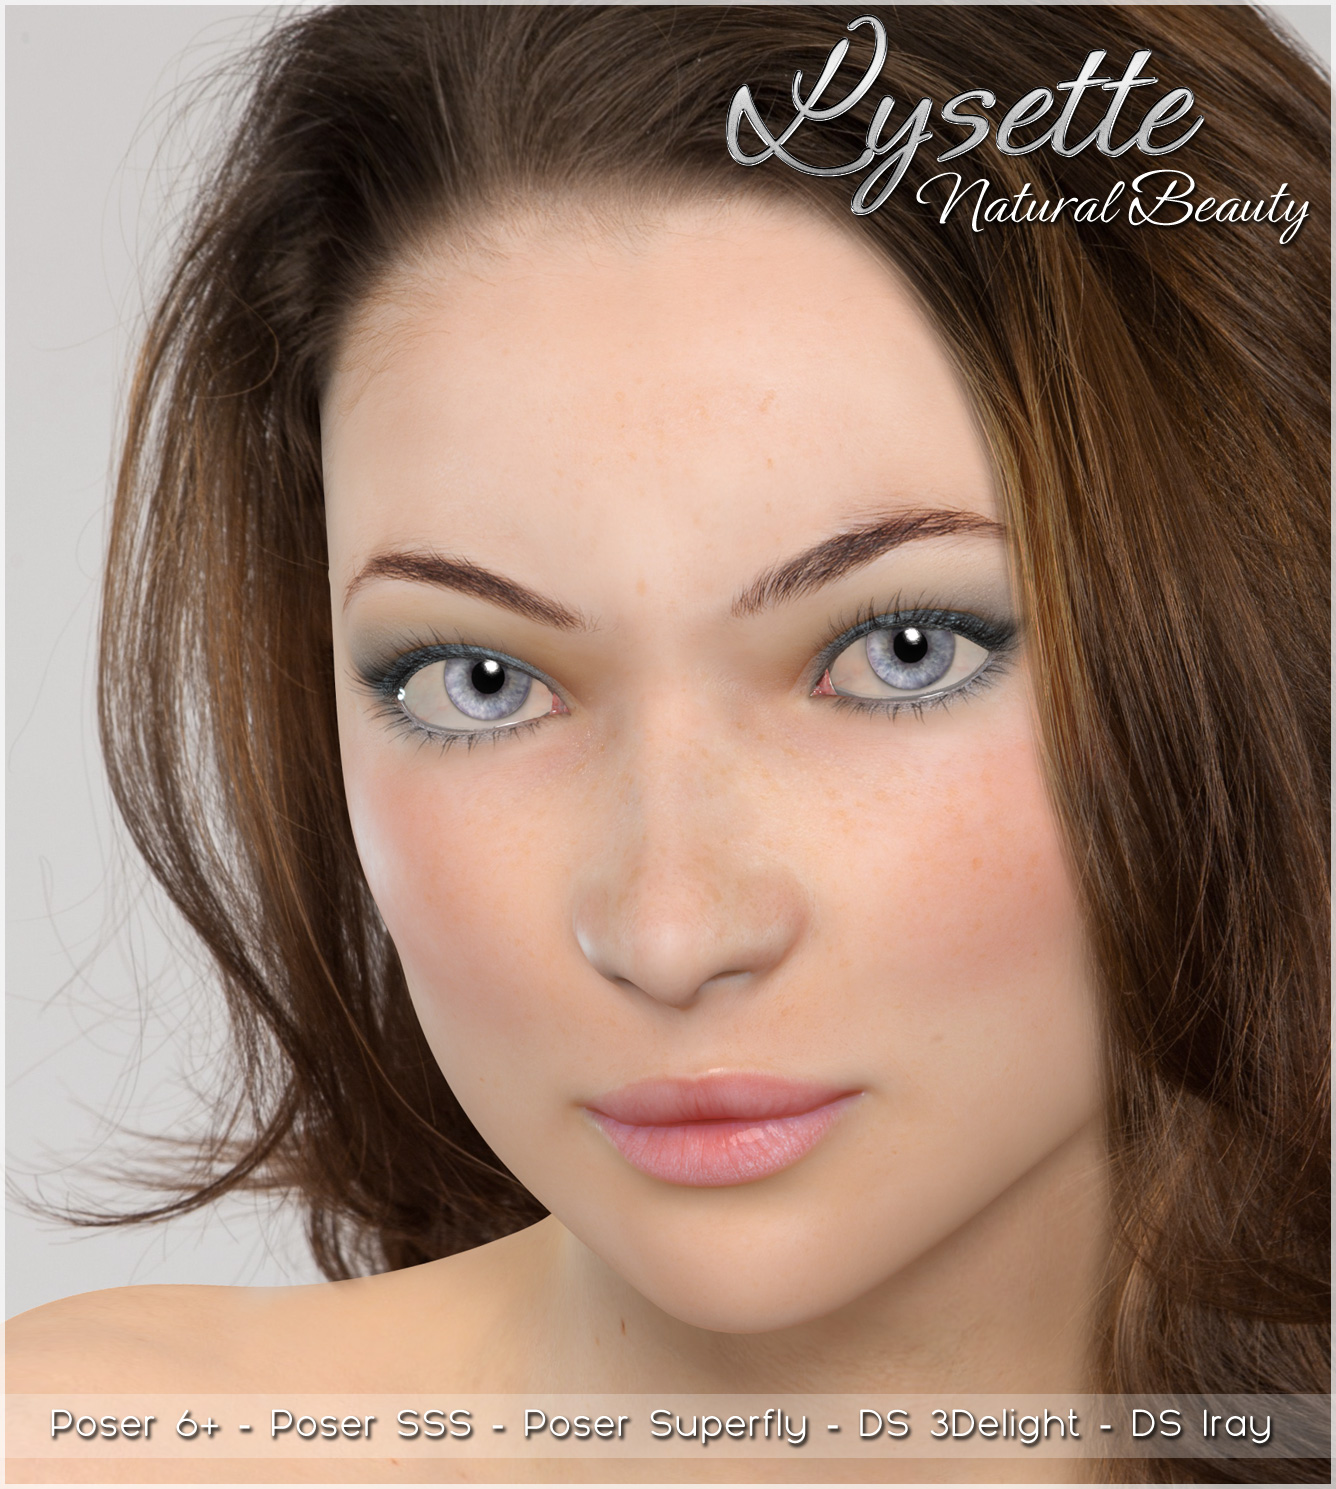 A3D Lysette Natural Beauty for V4